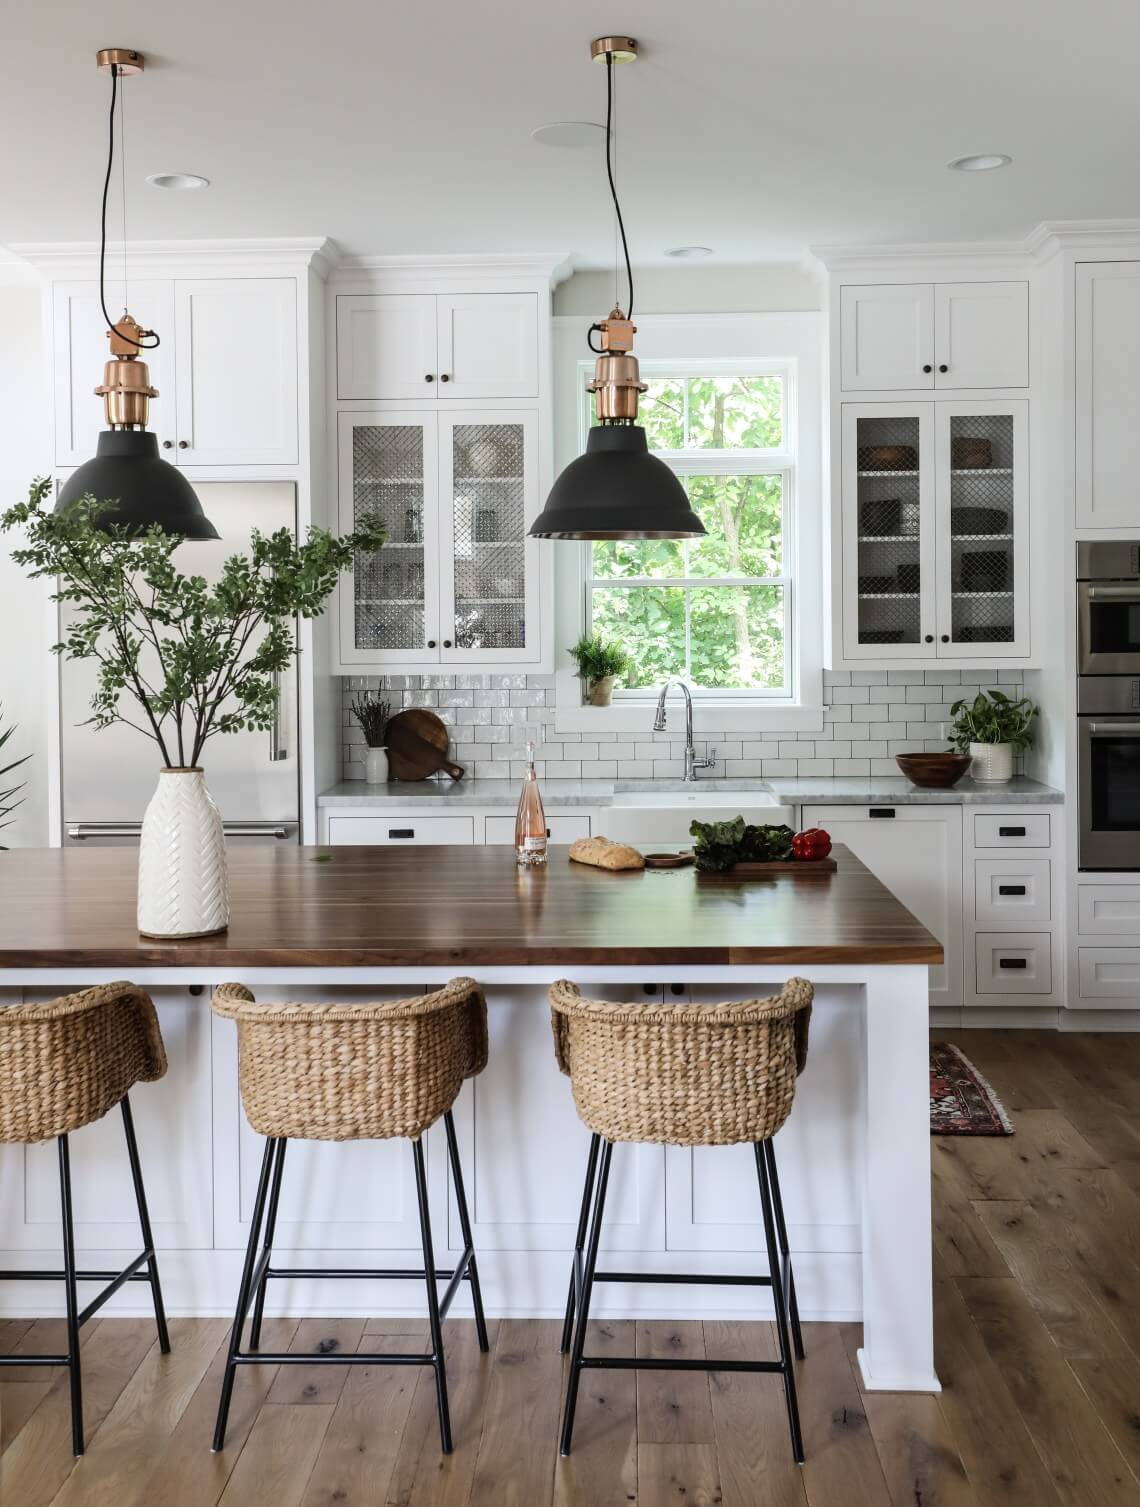 Farmhouse Style Lights in Kitchen